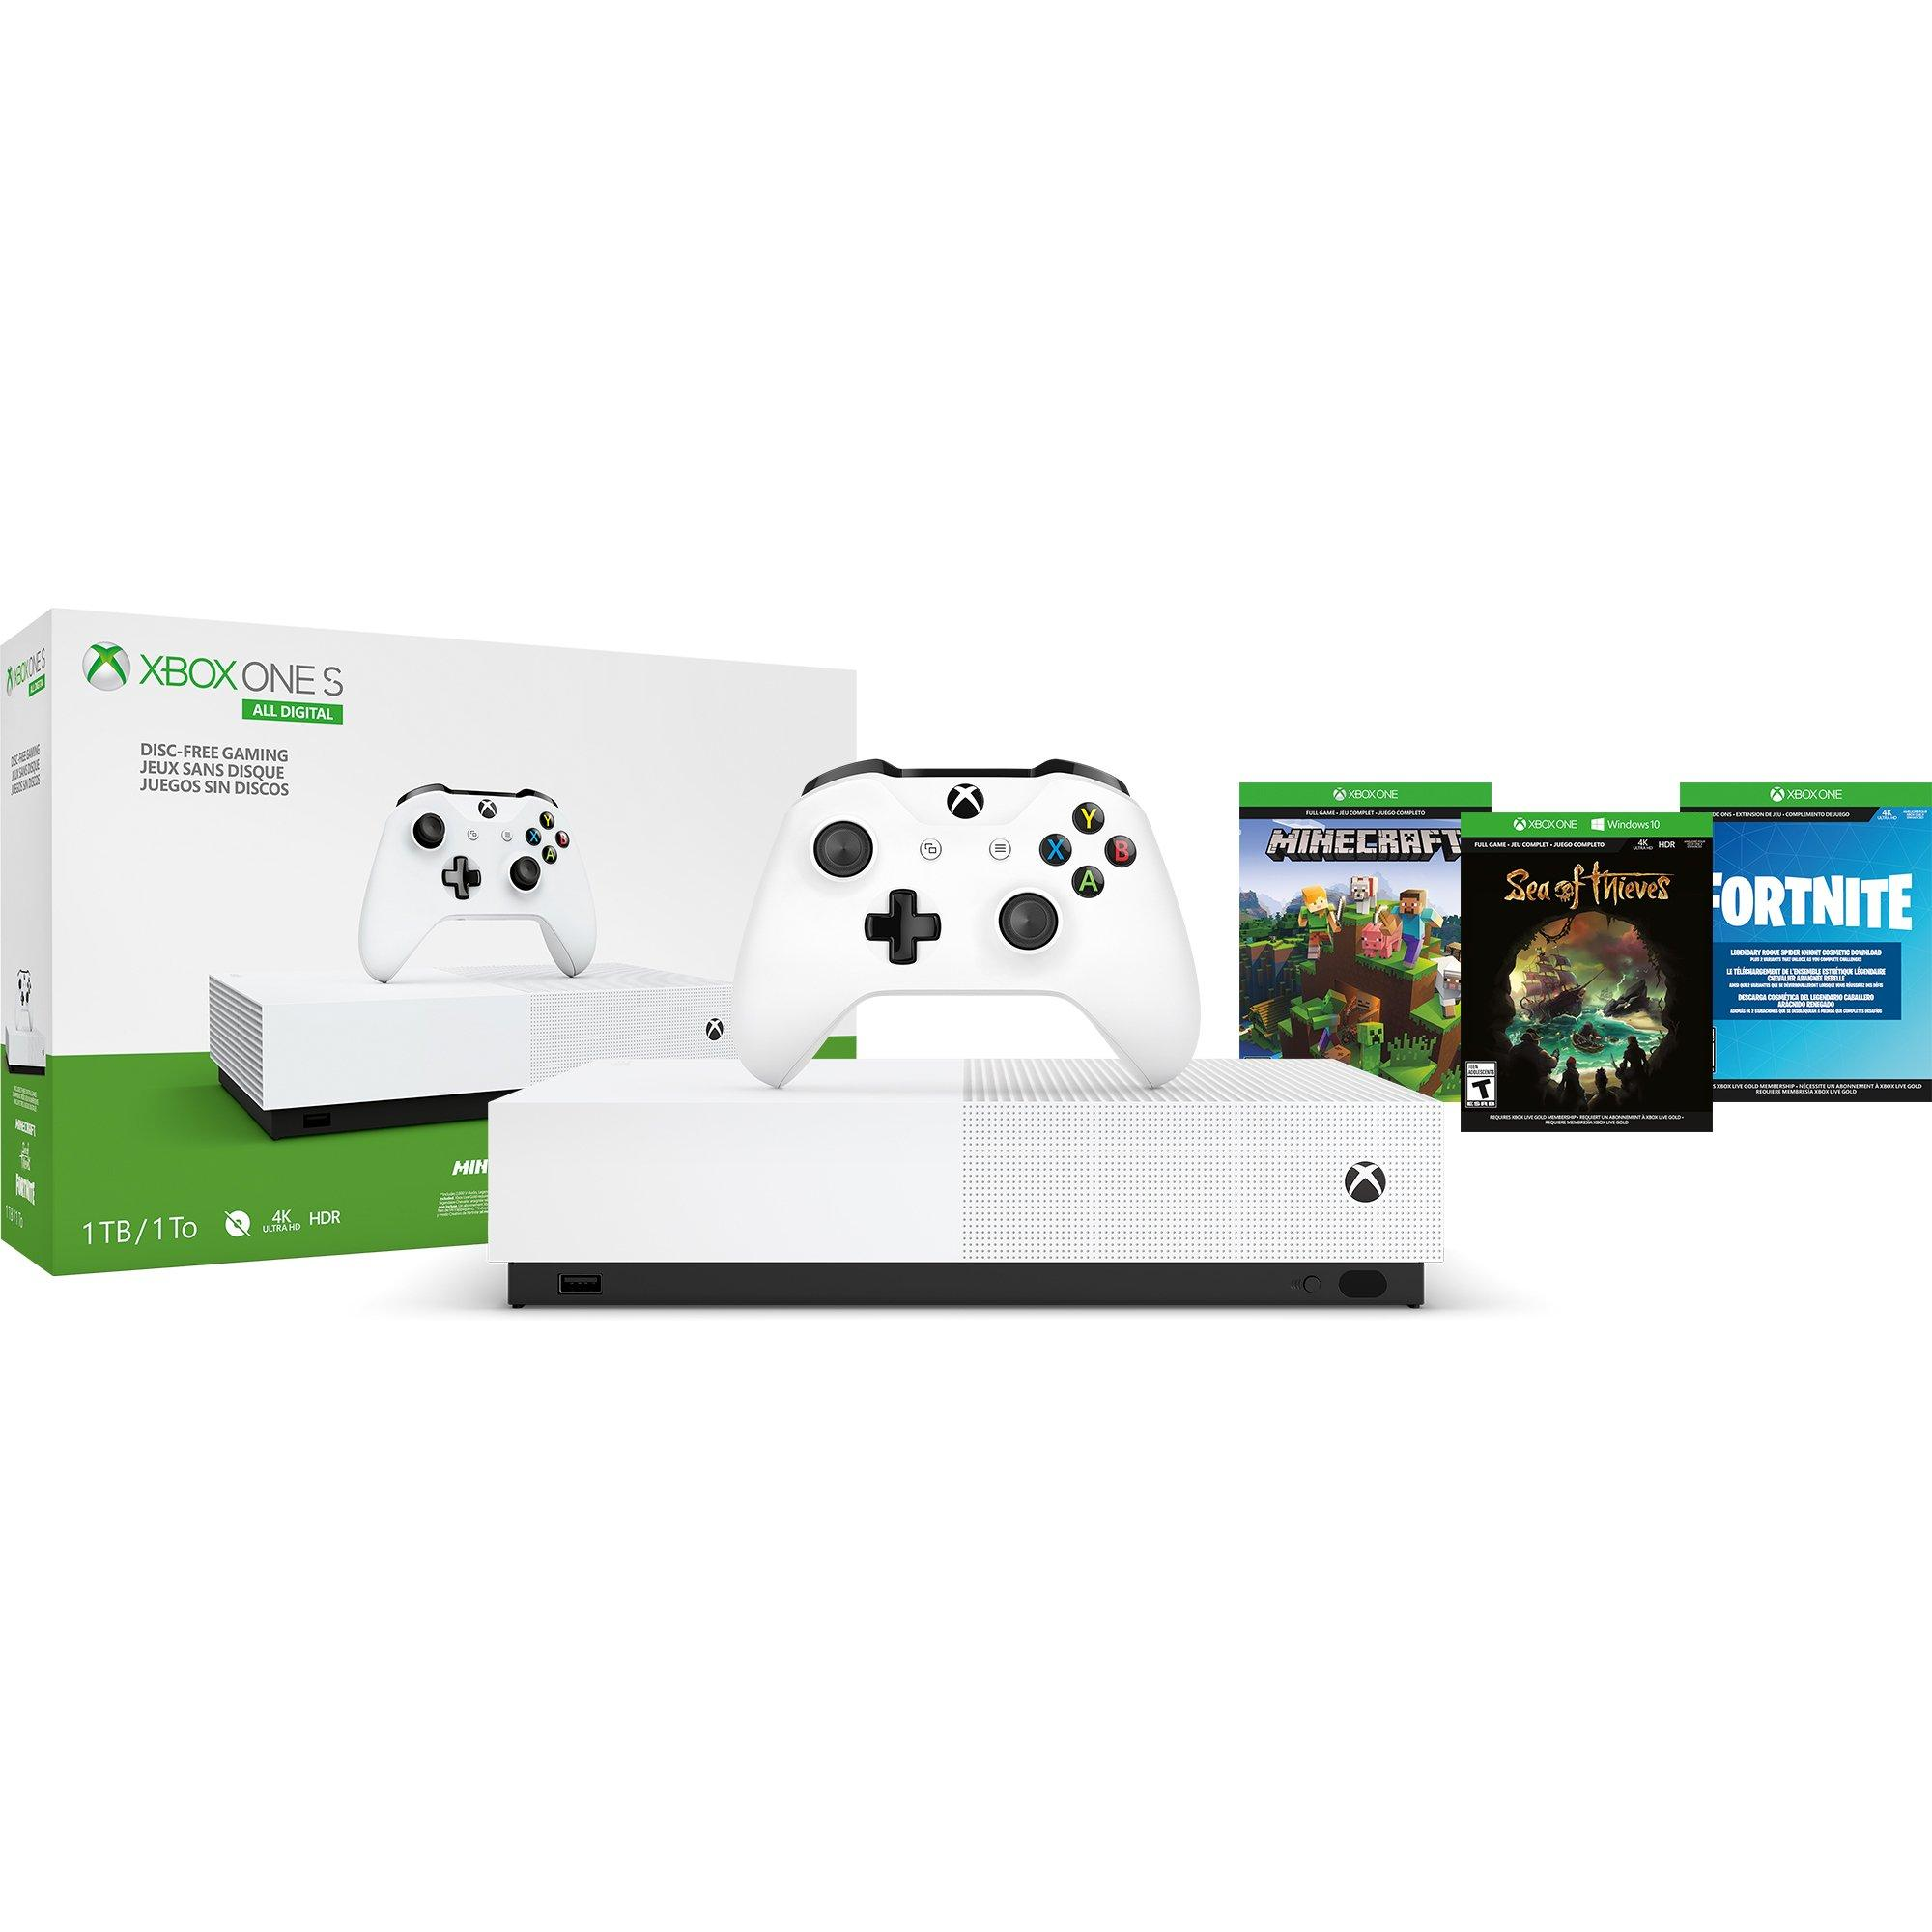 Fortnite Battle Royale In Roblox Coming 22418 Xbox One S All Digital Edition Bundle 1tb Xbox One Gamestop